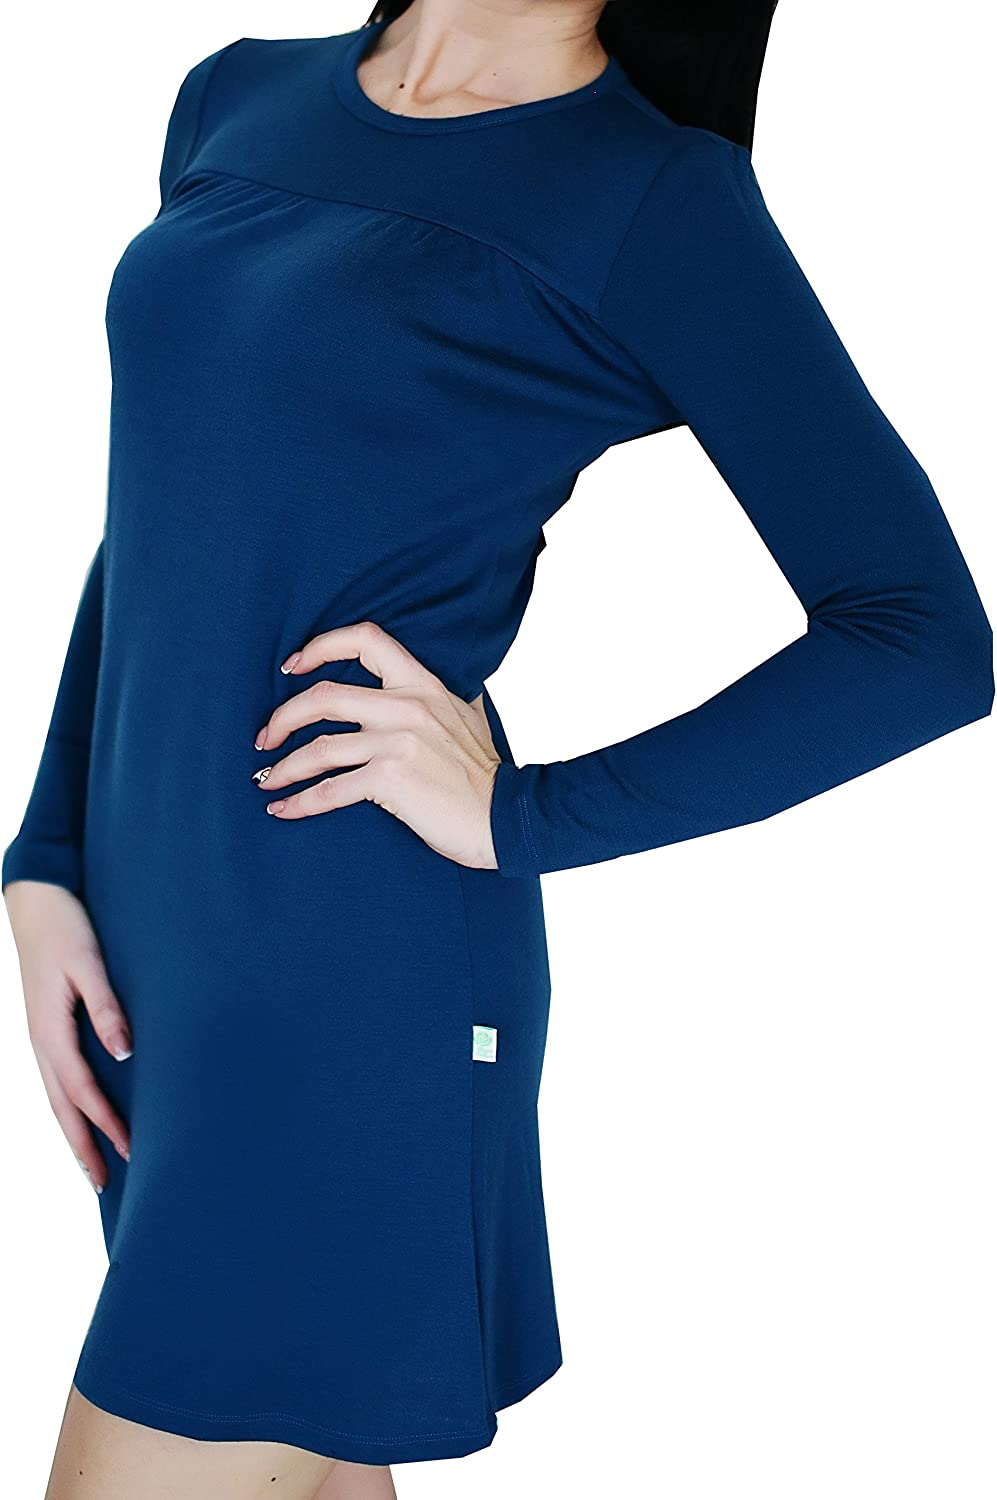 Womens Nightgown Import Long Sleeve Round Neck Nightshirts 100% Sales results No. 1 S-XXL